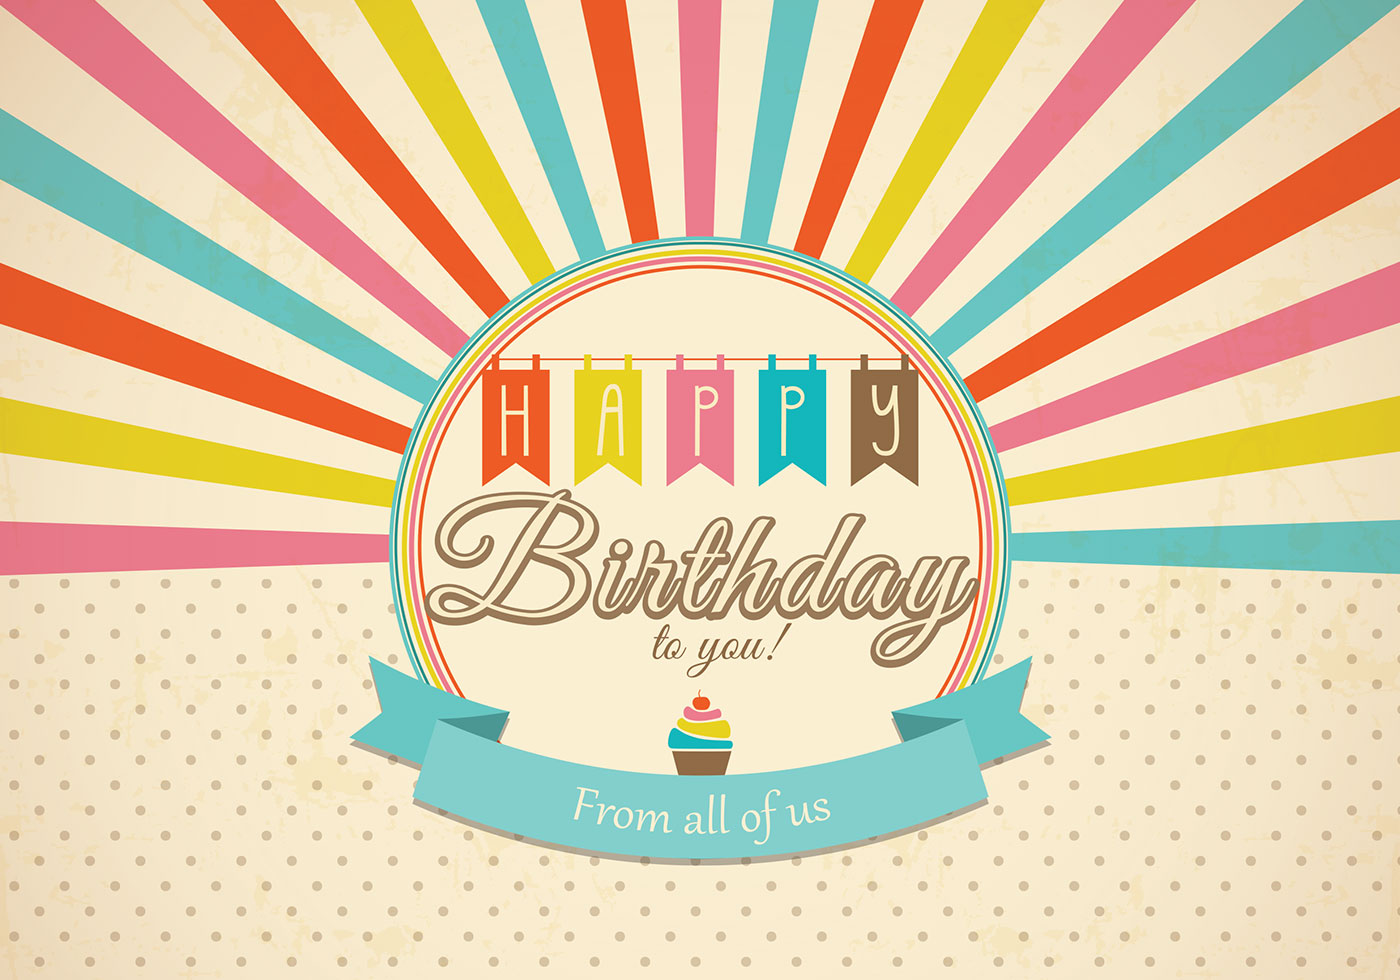 Retro happy birthday card psd free photoshop brushes at brusheezy bookmarktalkfo Image collections